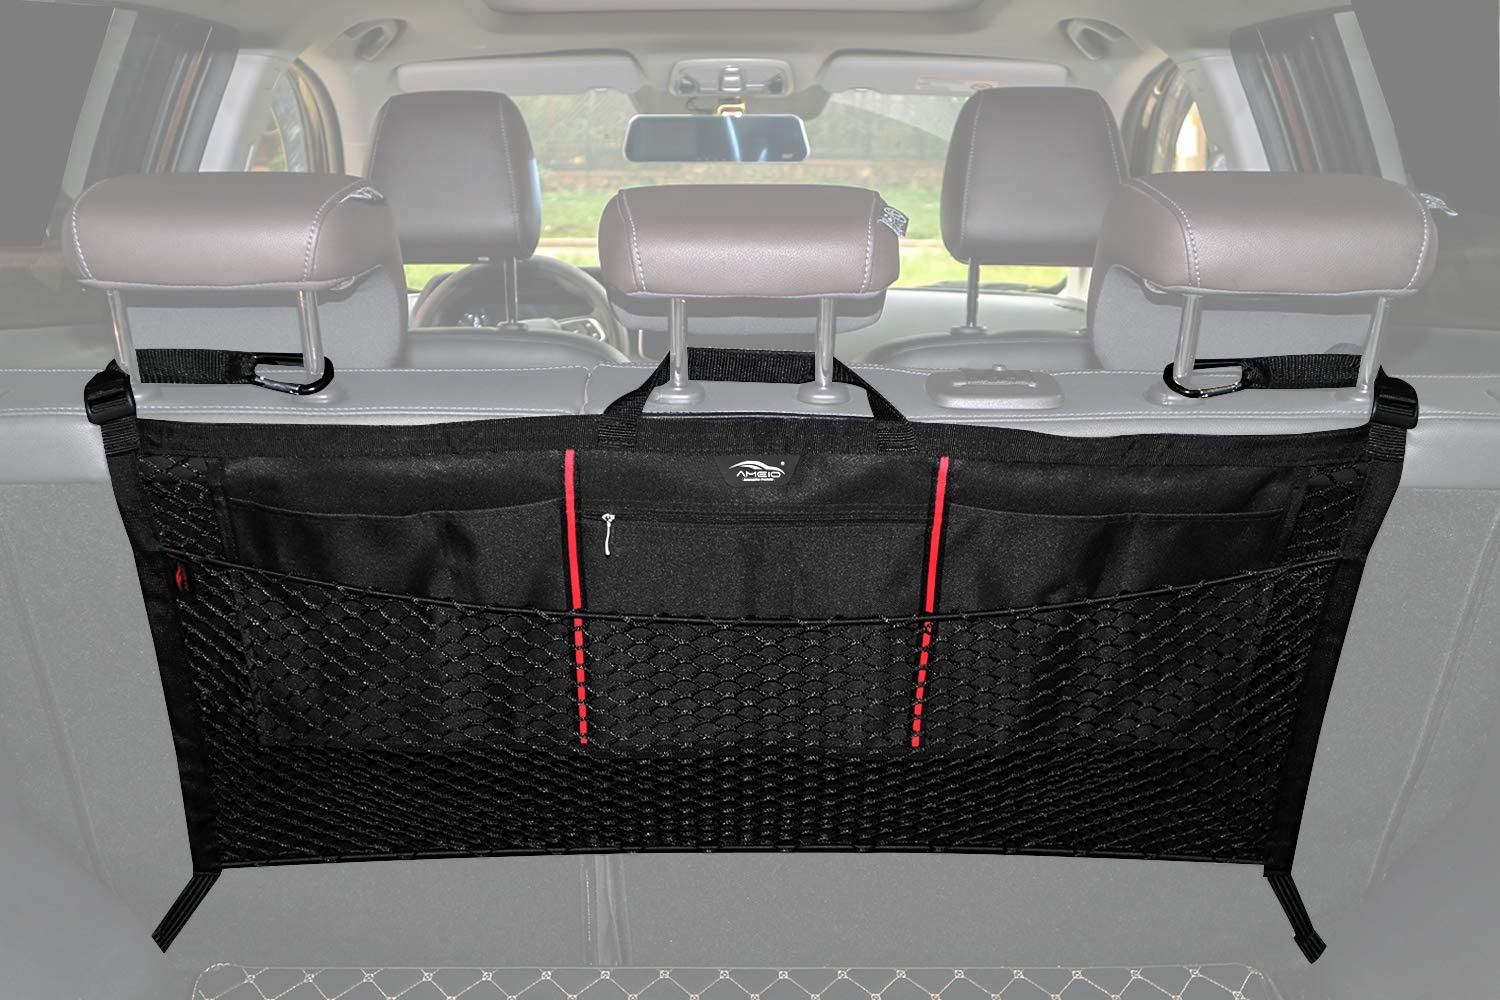 Organizing Luggage Backpack Cargo Storage Seat Heart Horse Storage Bag Mesh Luggage Net Net Bags Separate Front and Rear Seat Nets